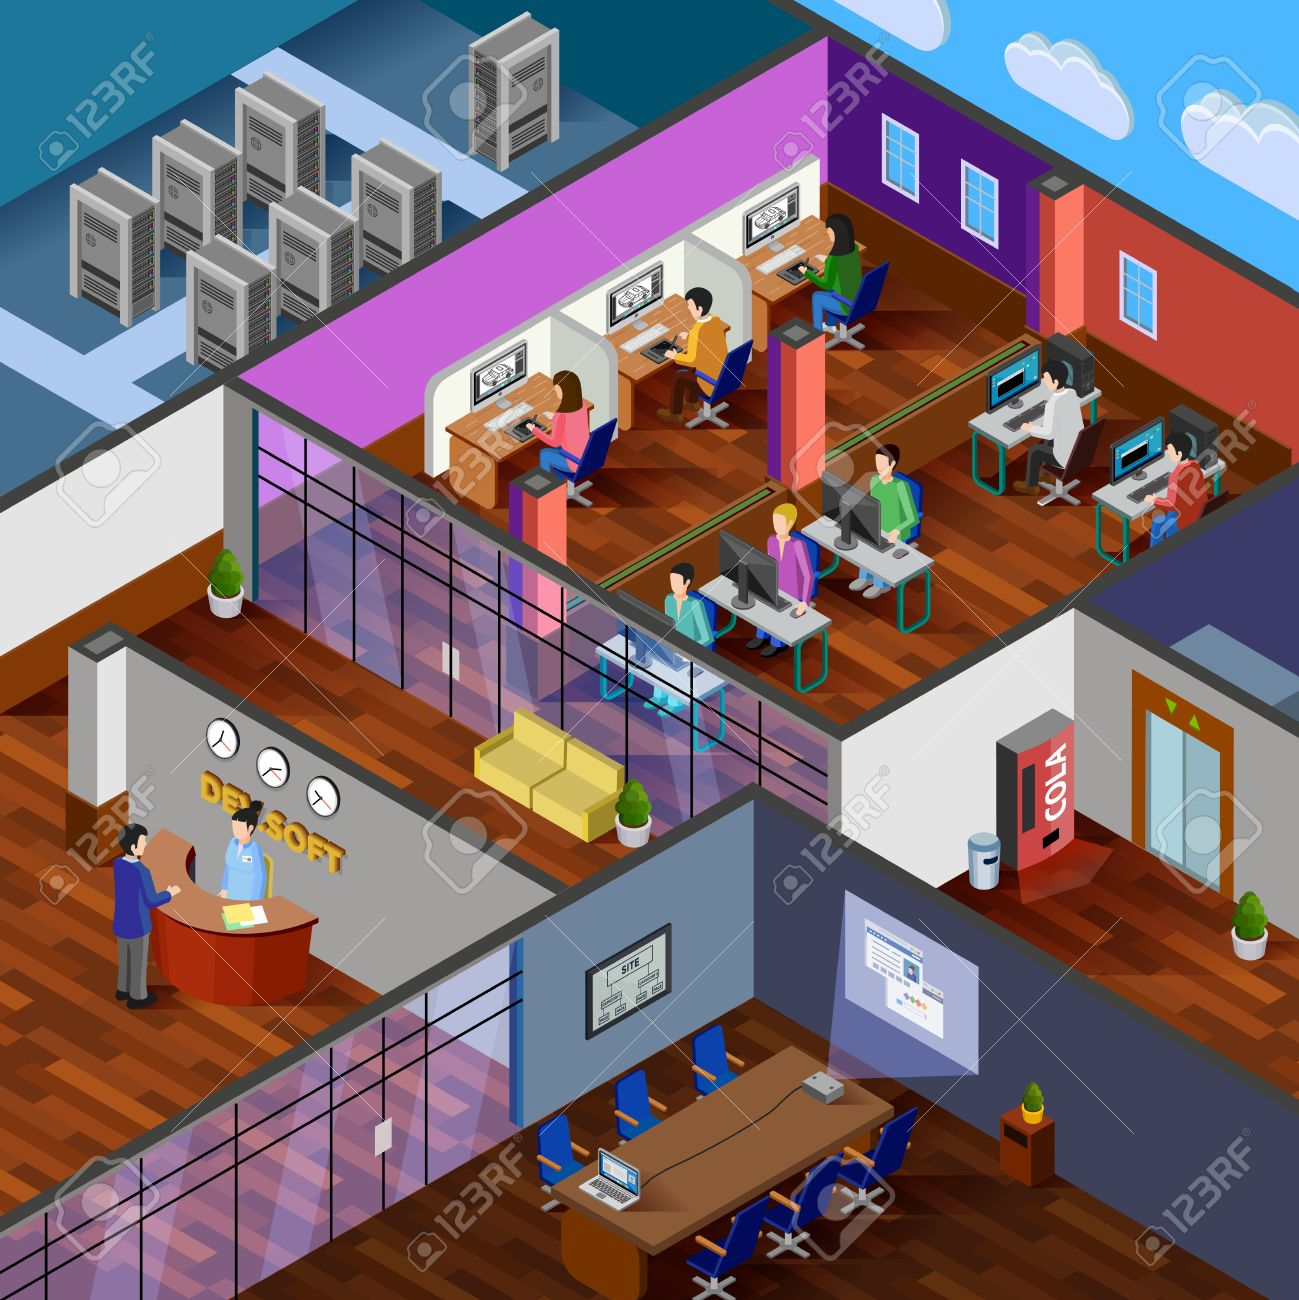 Development Office Isometric Design Concept With Reception Server Room  Conference Hall And Working Place For Software